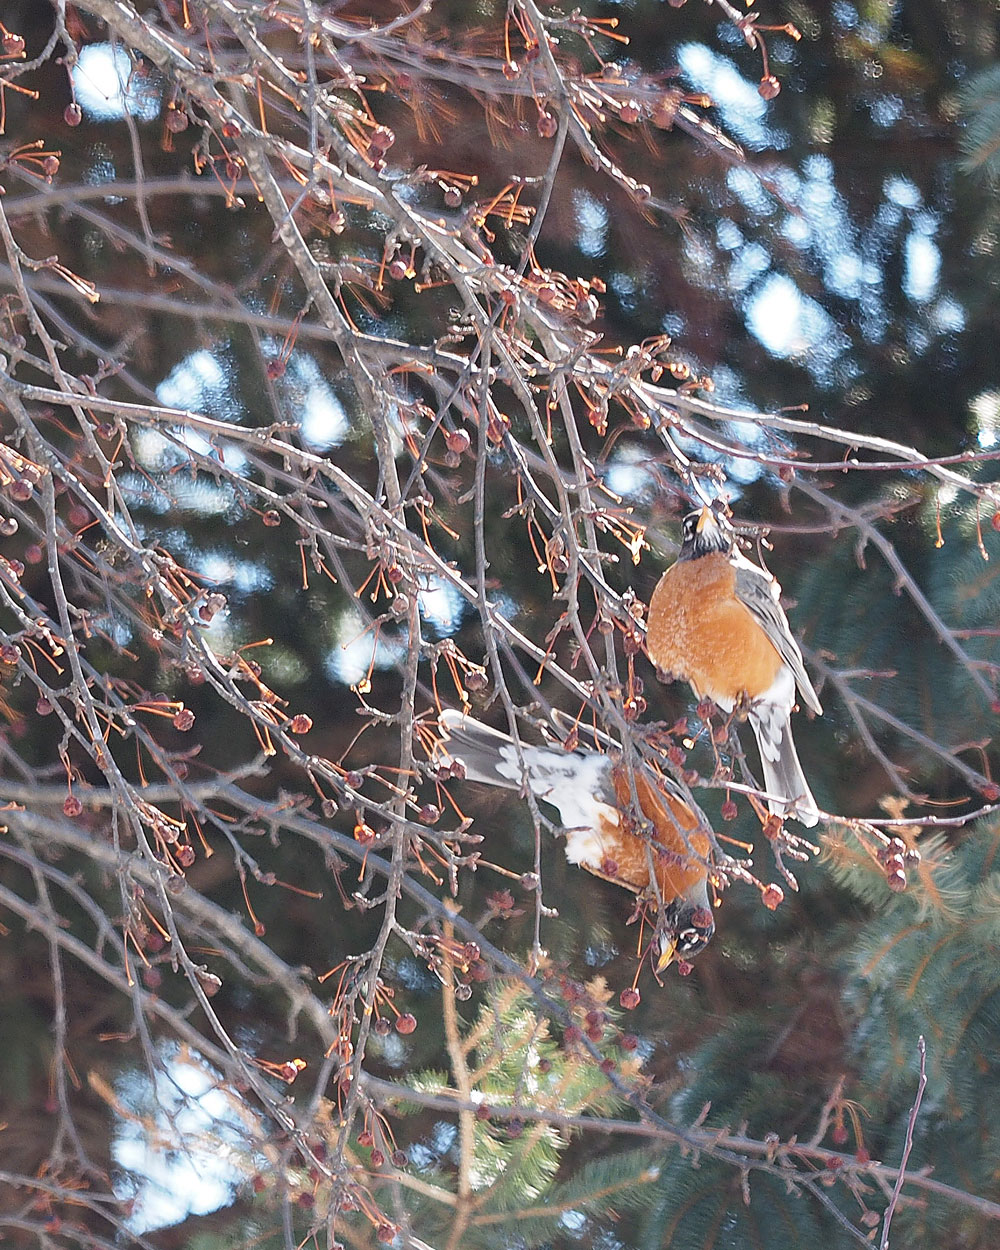 A feast for robins